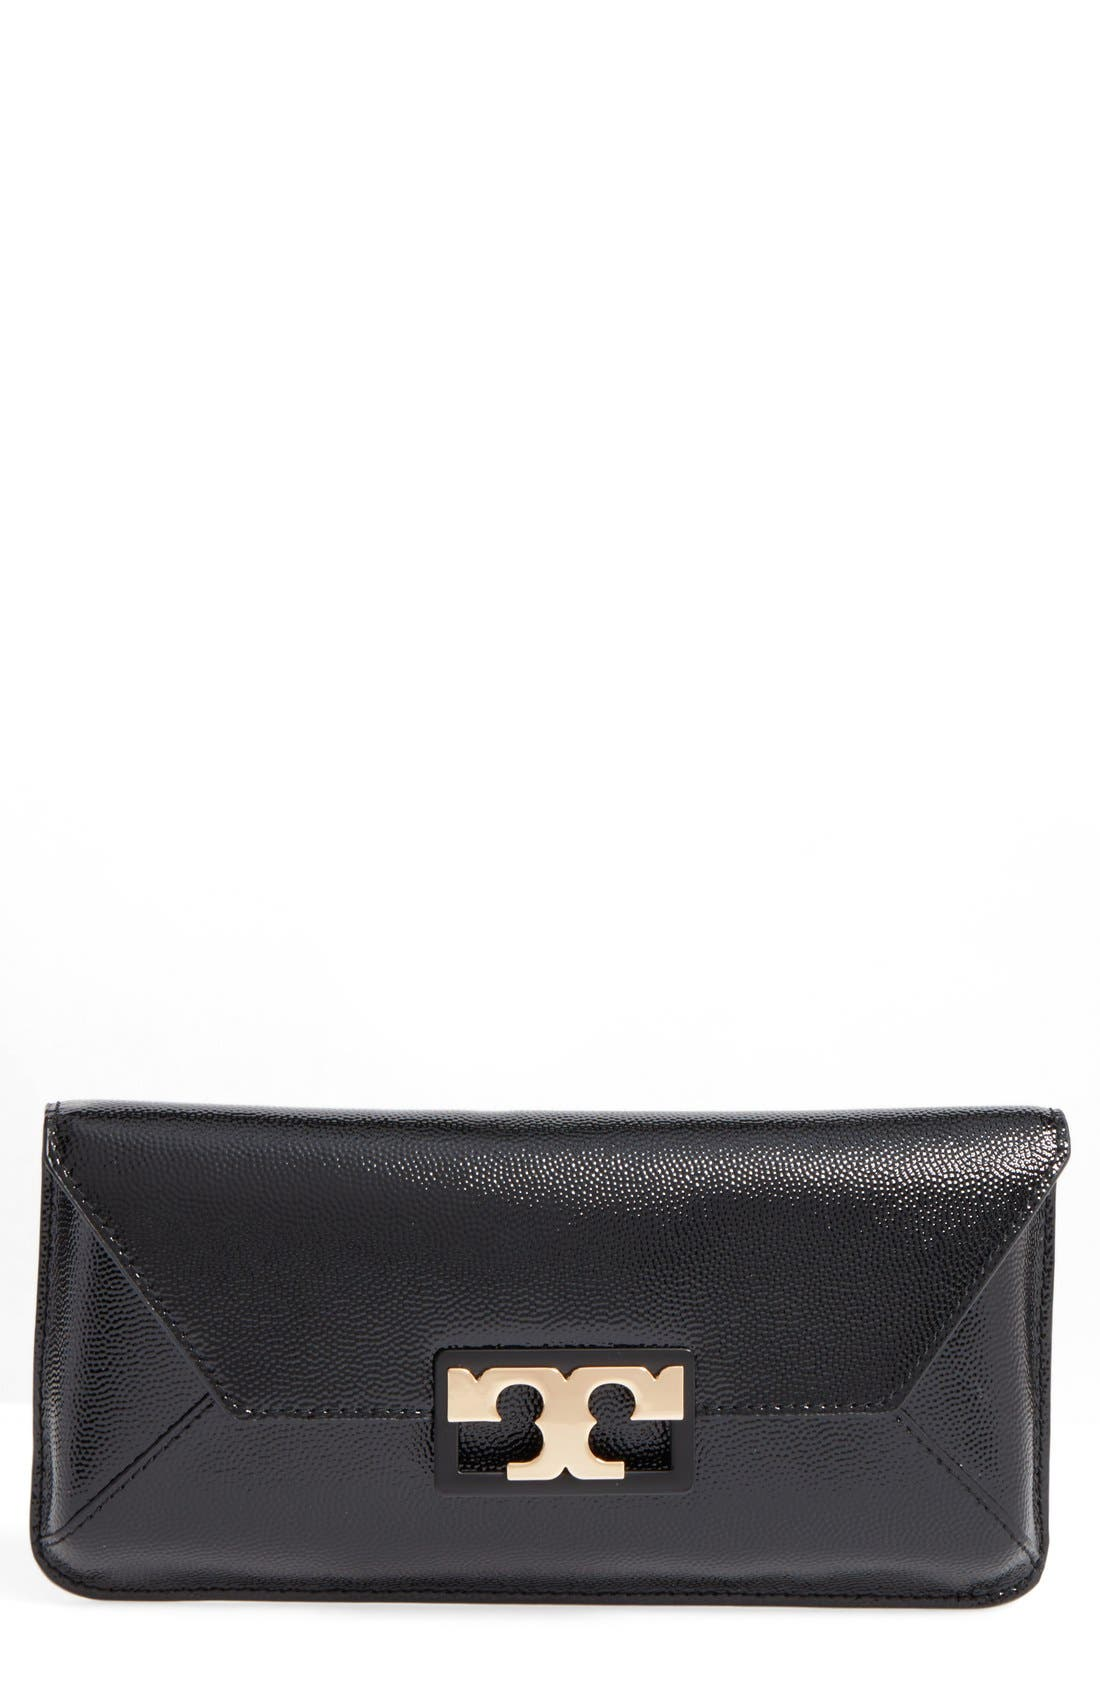 Main Image - Tory Burch Gigi Caviar Leather Clutch